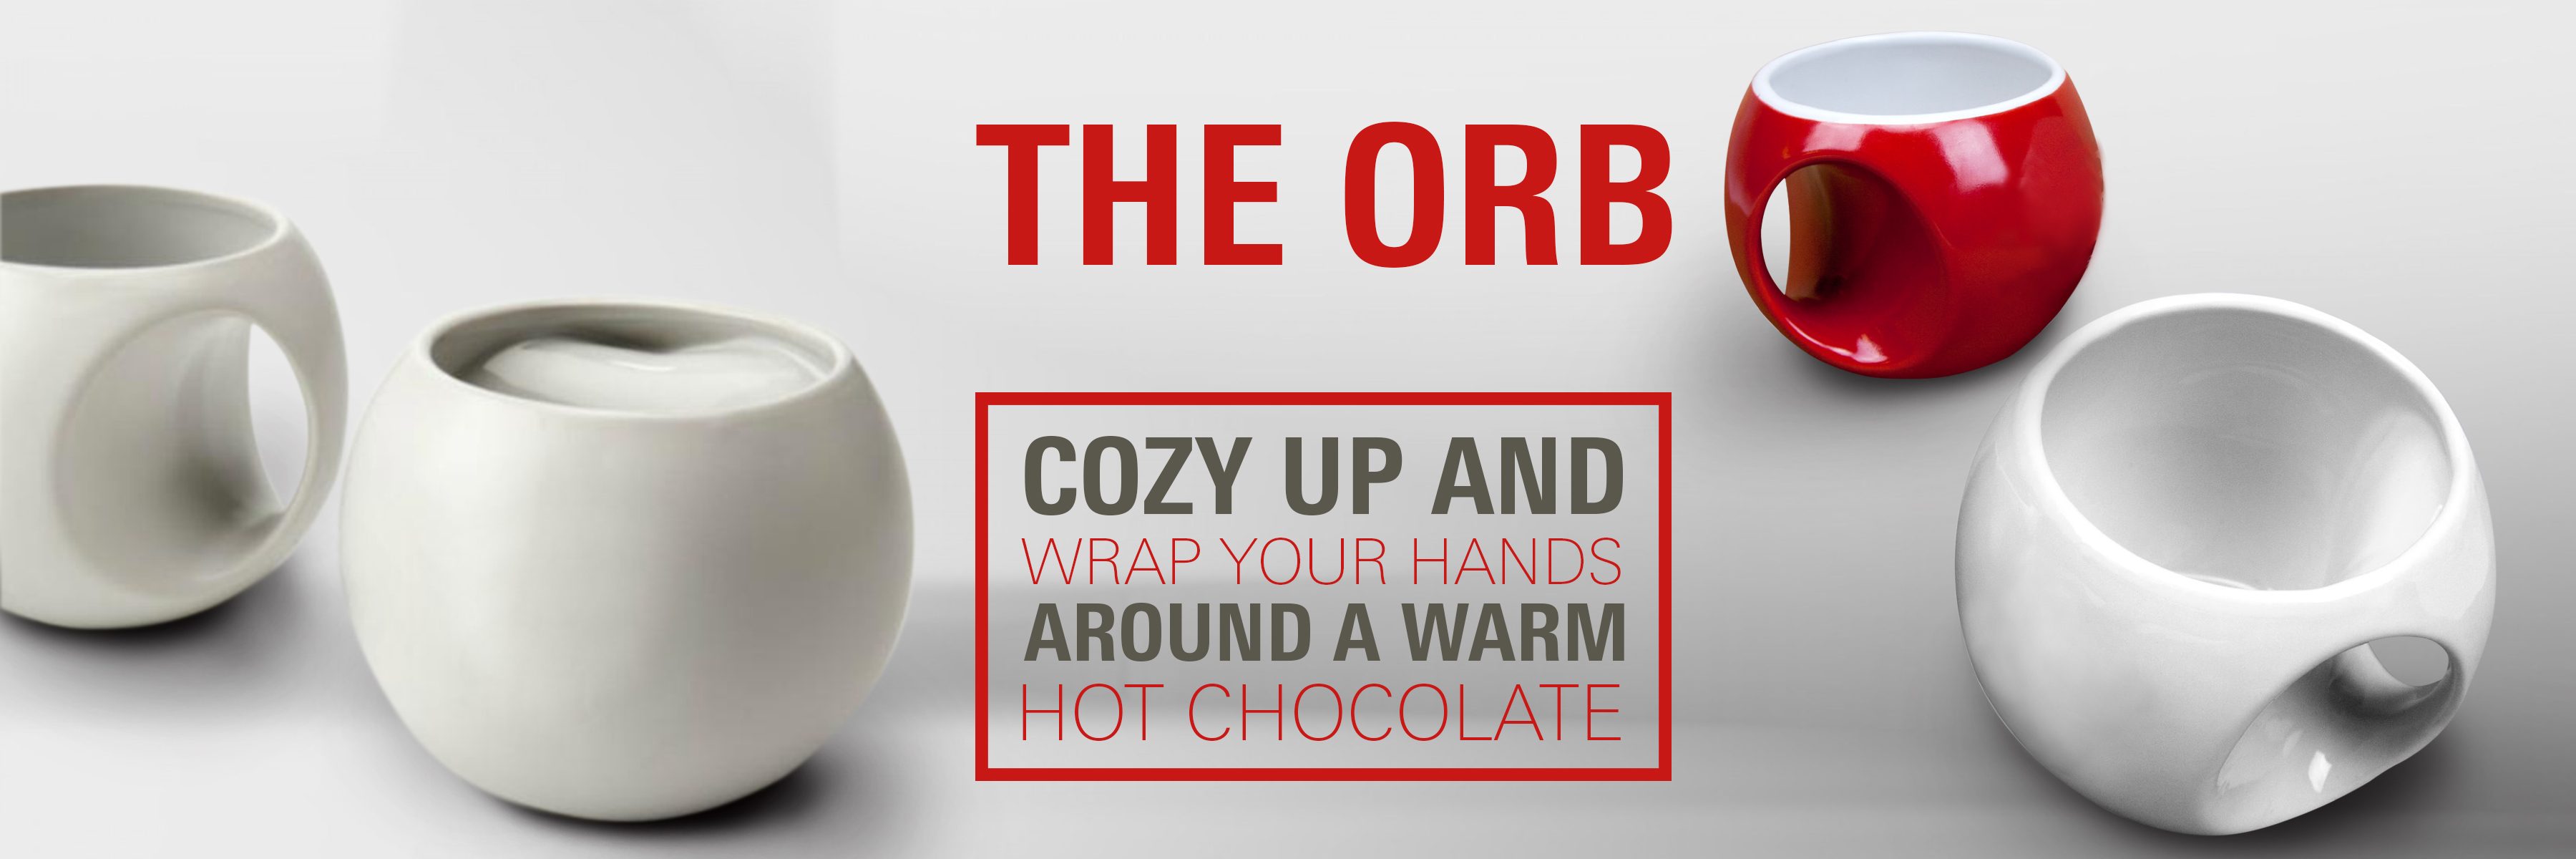 The-Orb